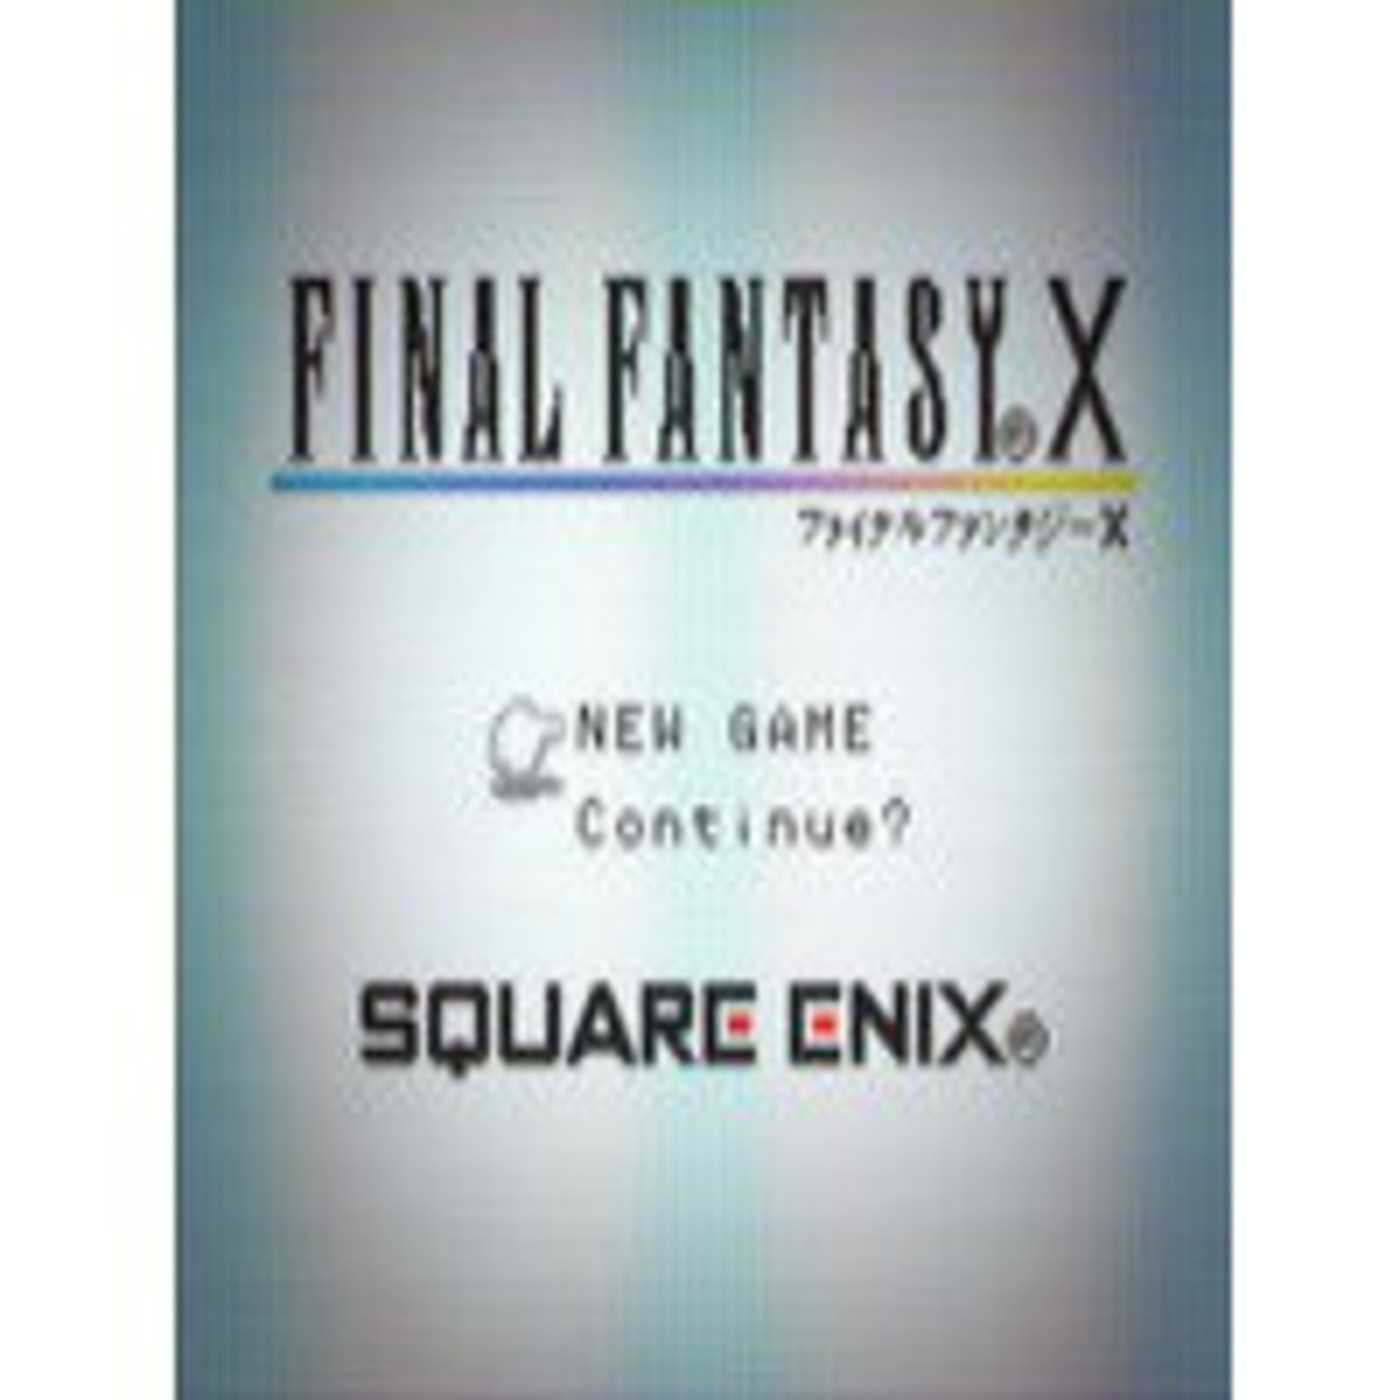 Final fantasy x chips in GamOST in mp3(05/01 a las 07:44:44) 37:18